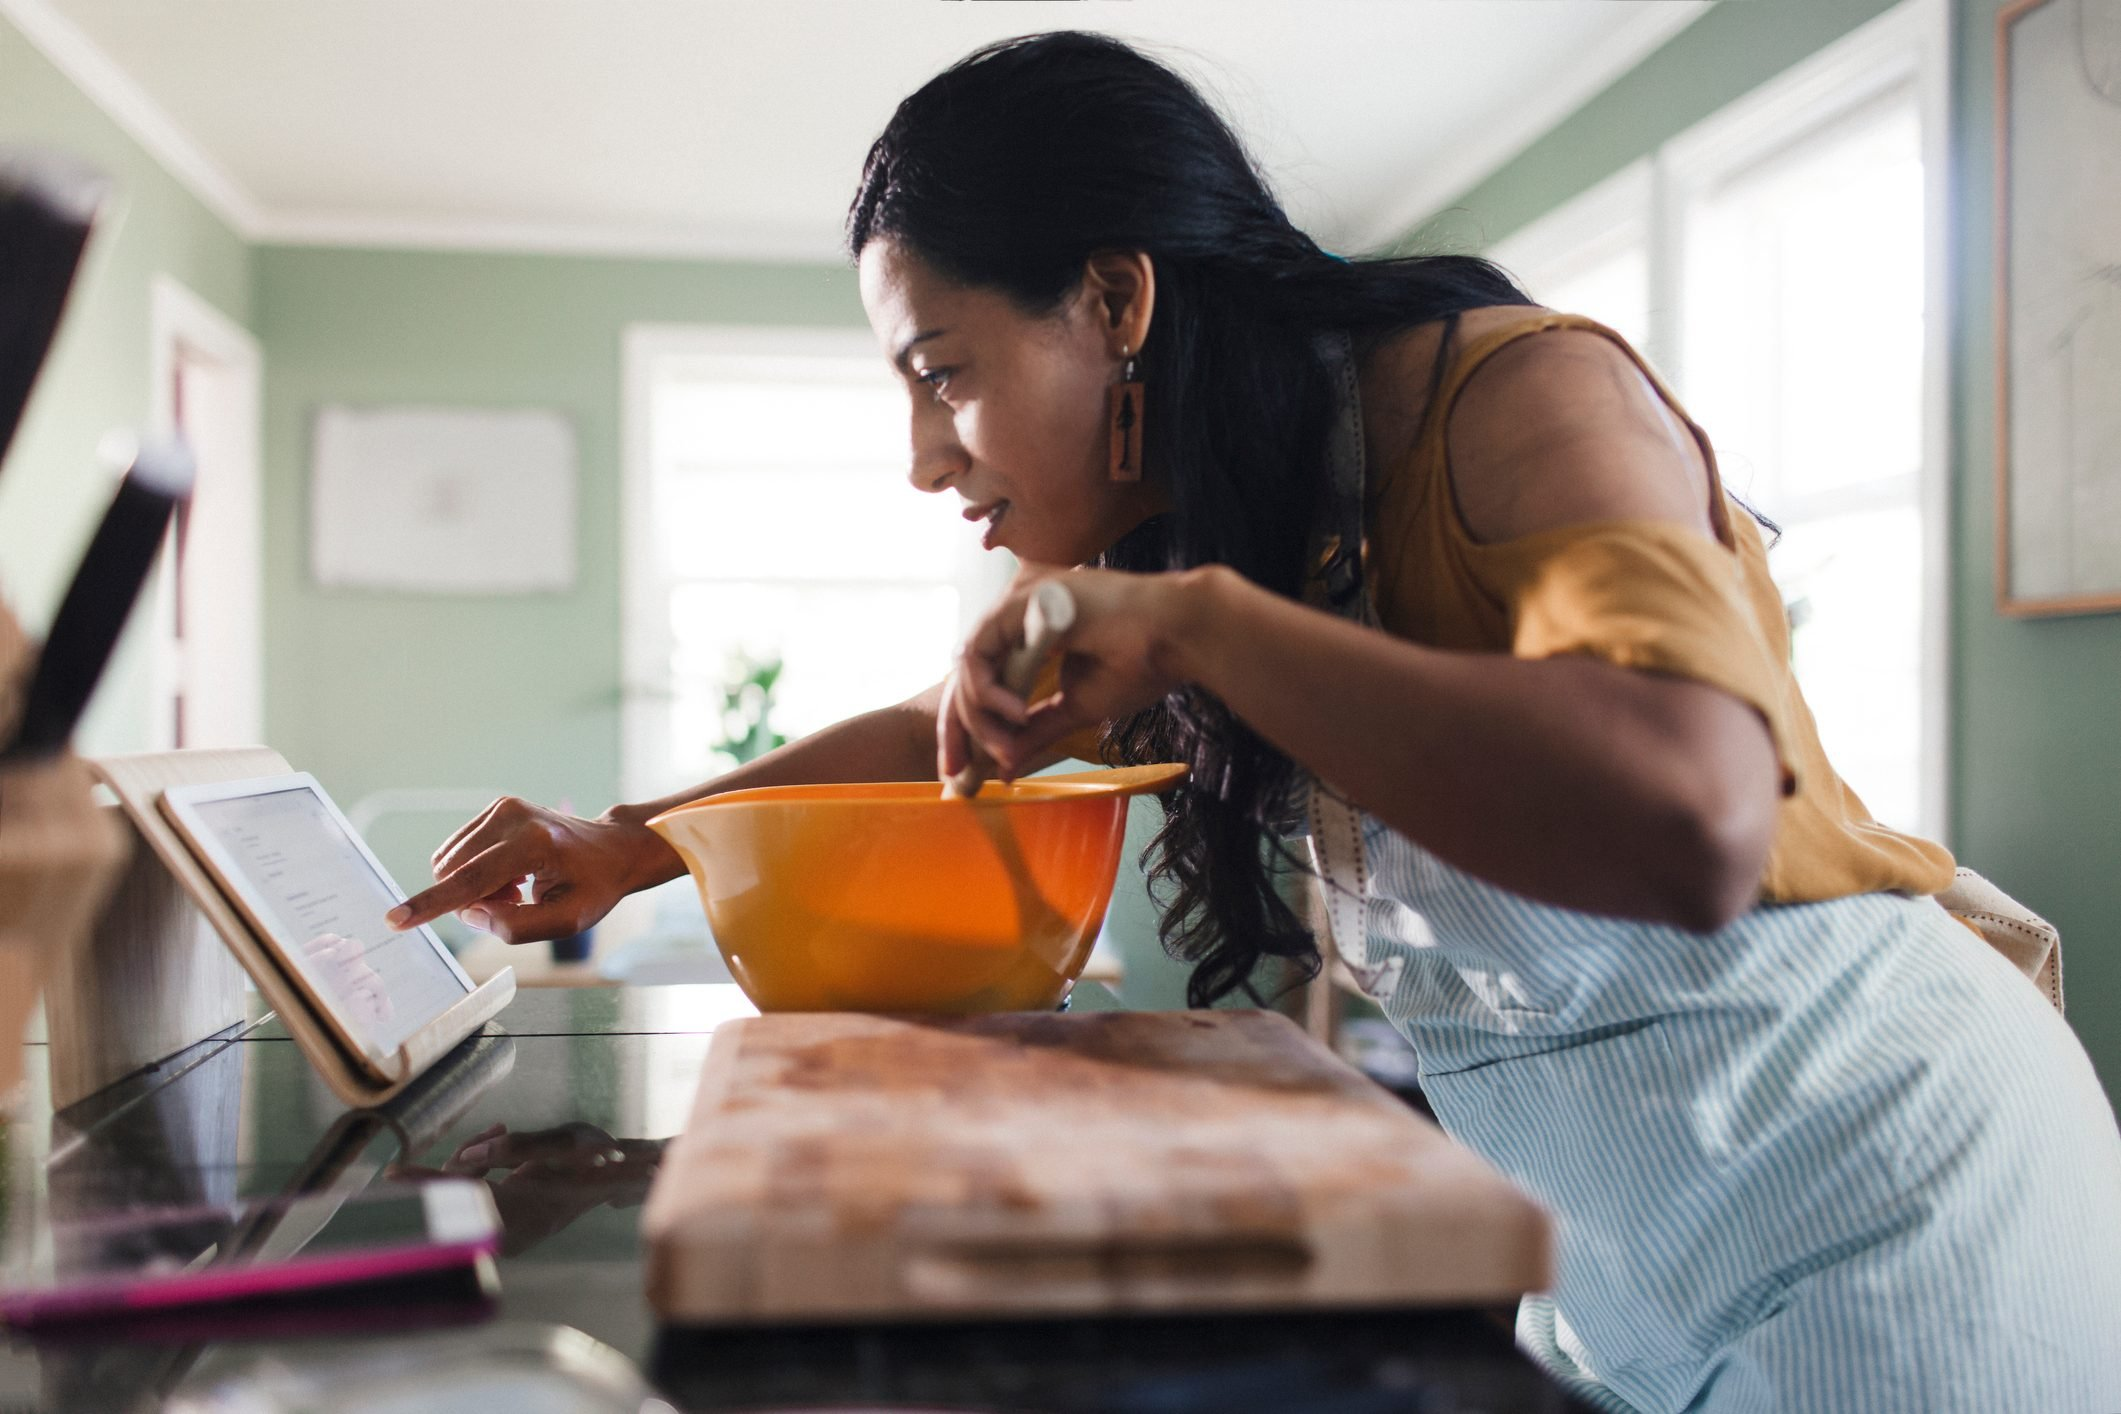 Side view of woman using tablet computer for recipe while preparing food in kitchen